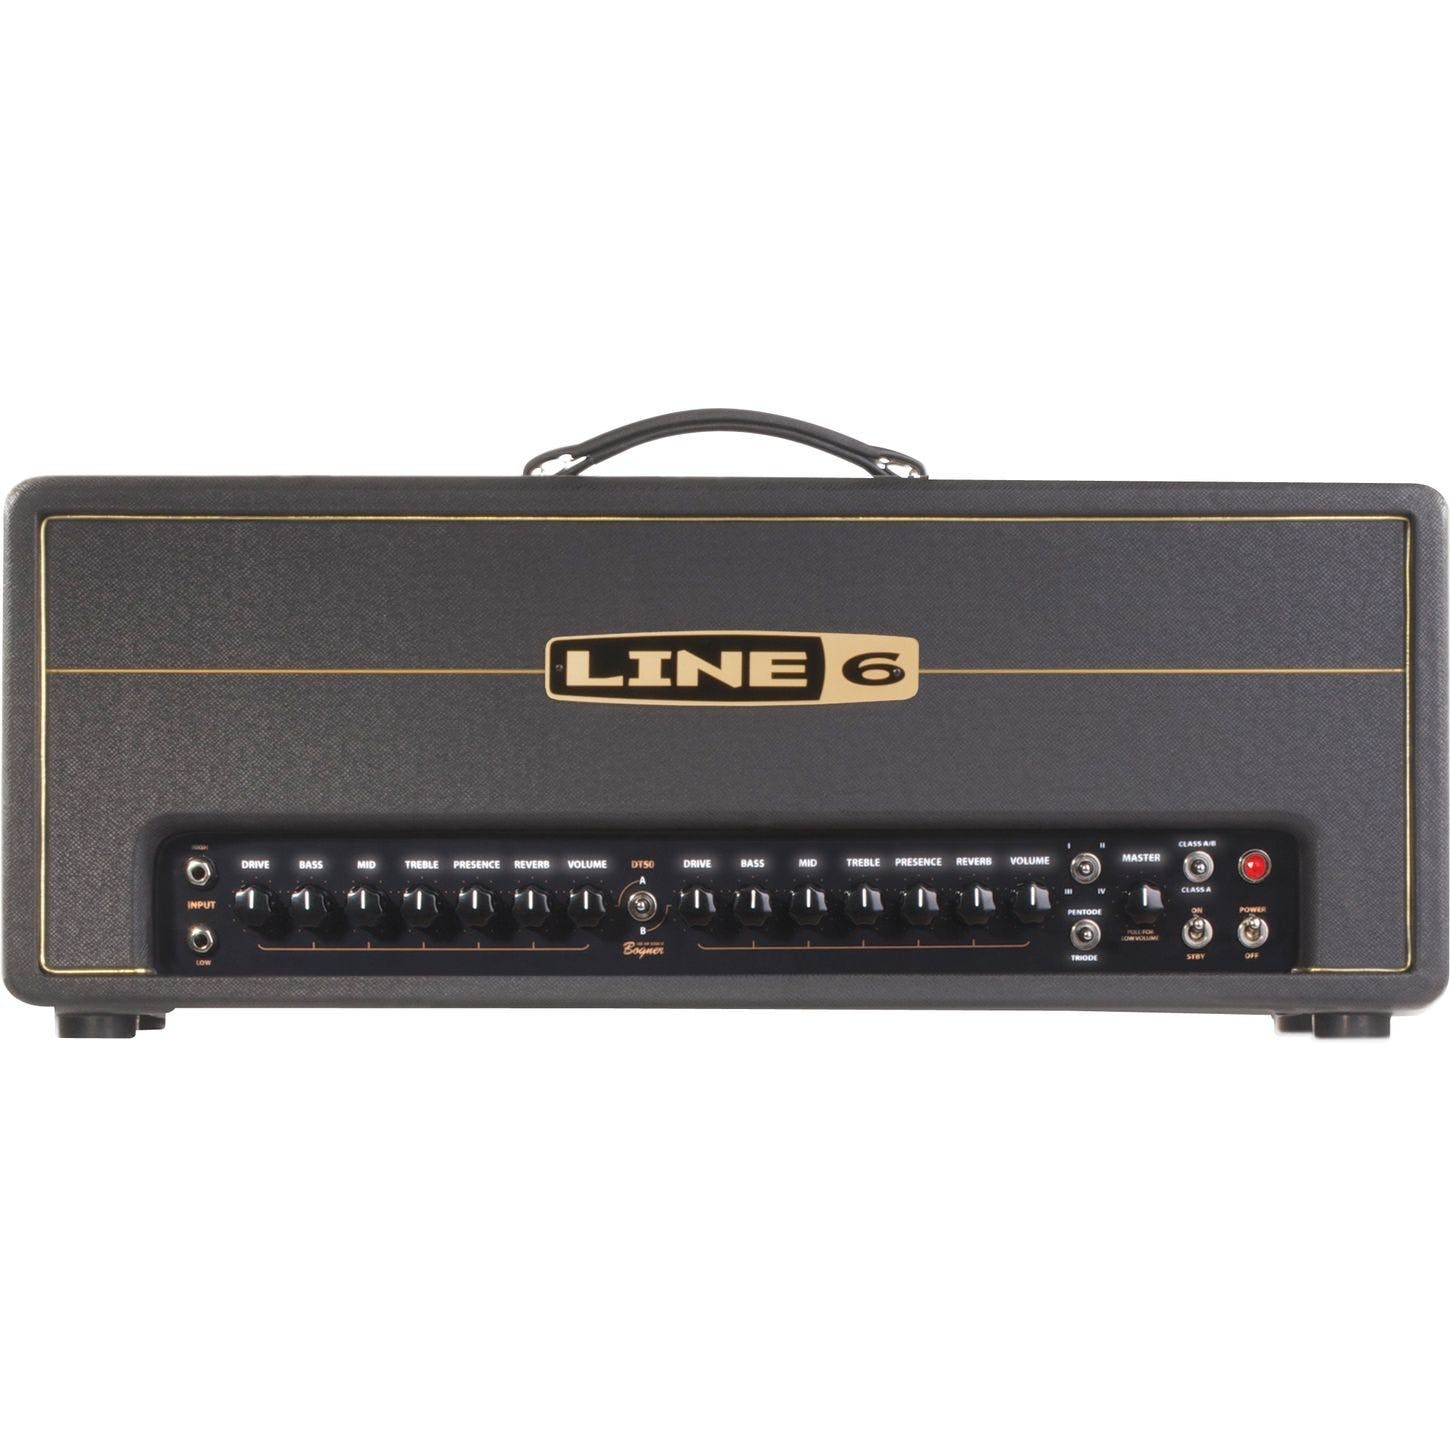 Related keywords amp suggestions for line 6 guitar amps - Related Keywords Amp Suggestions For Line 6 Guitar Amps 51